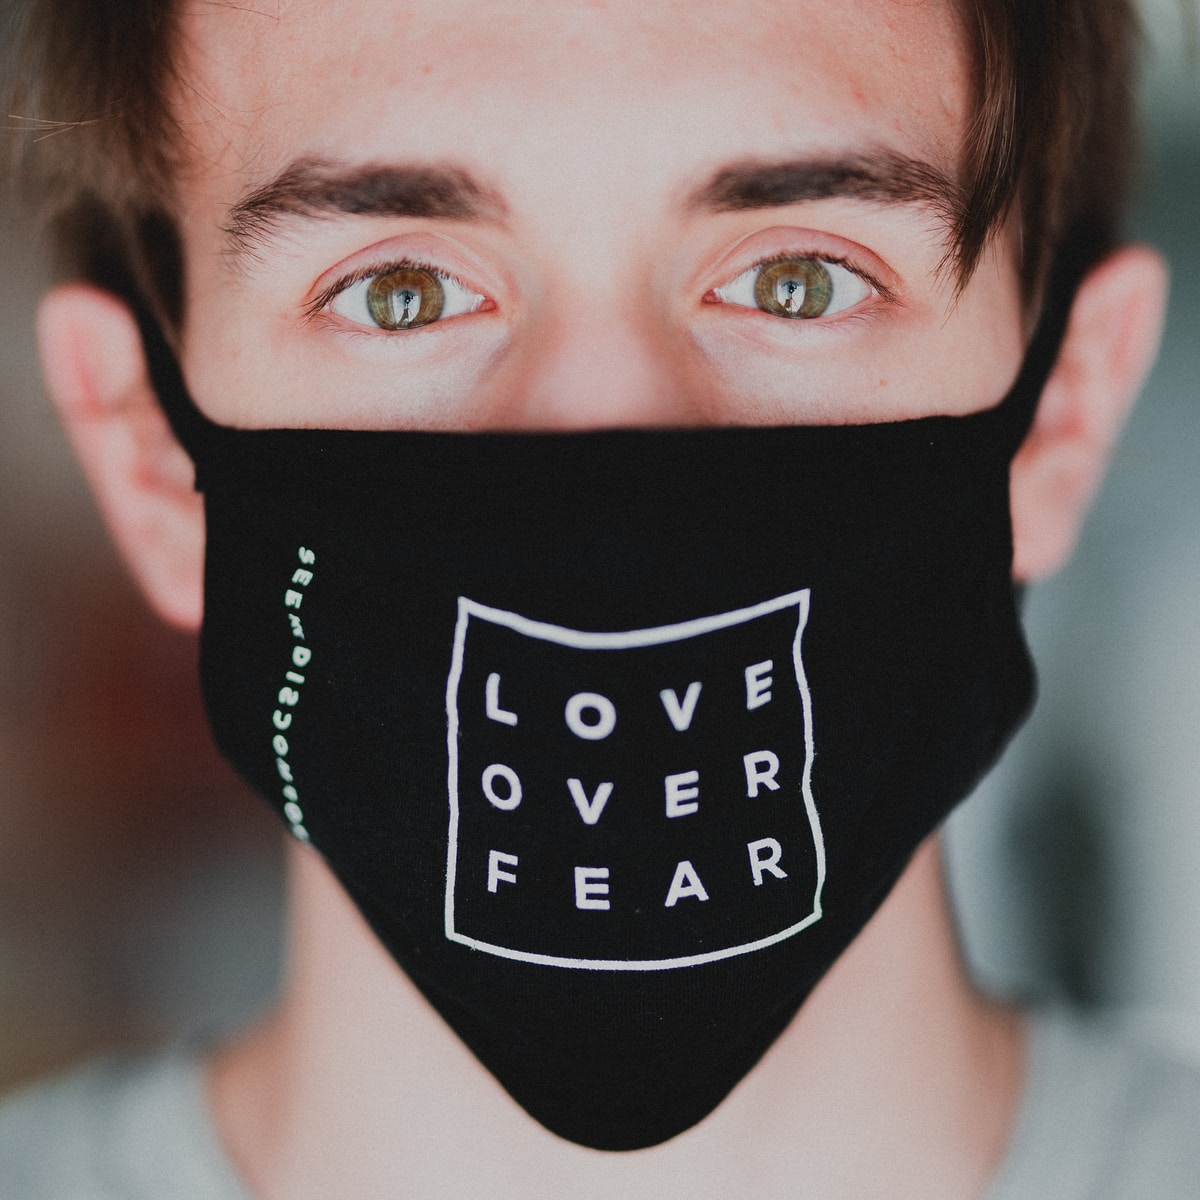 white male wearing a mask that says Love Over Fear